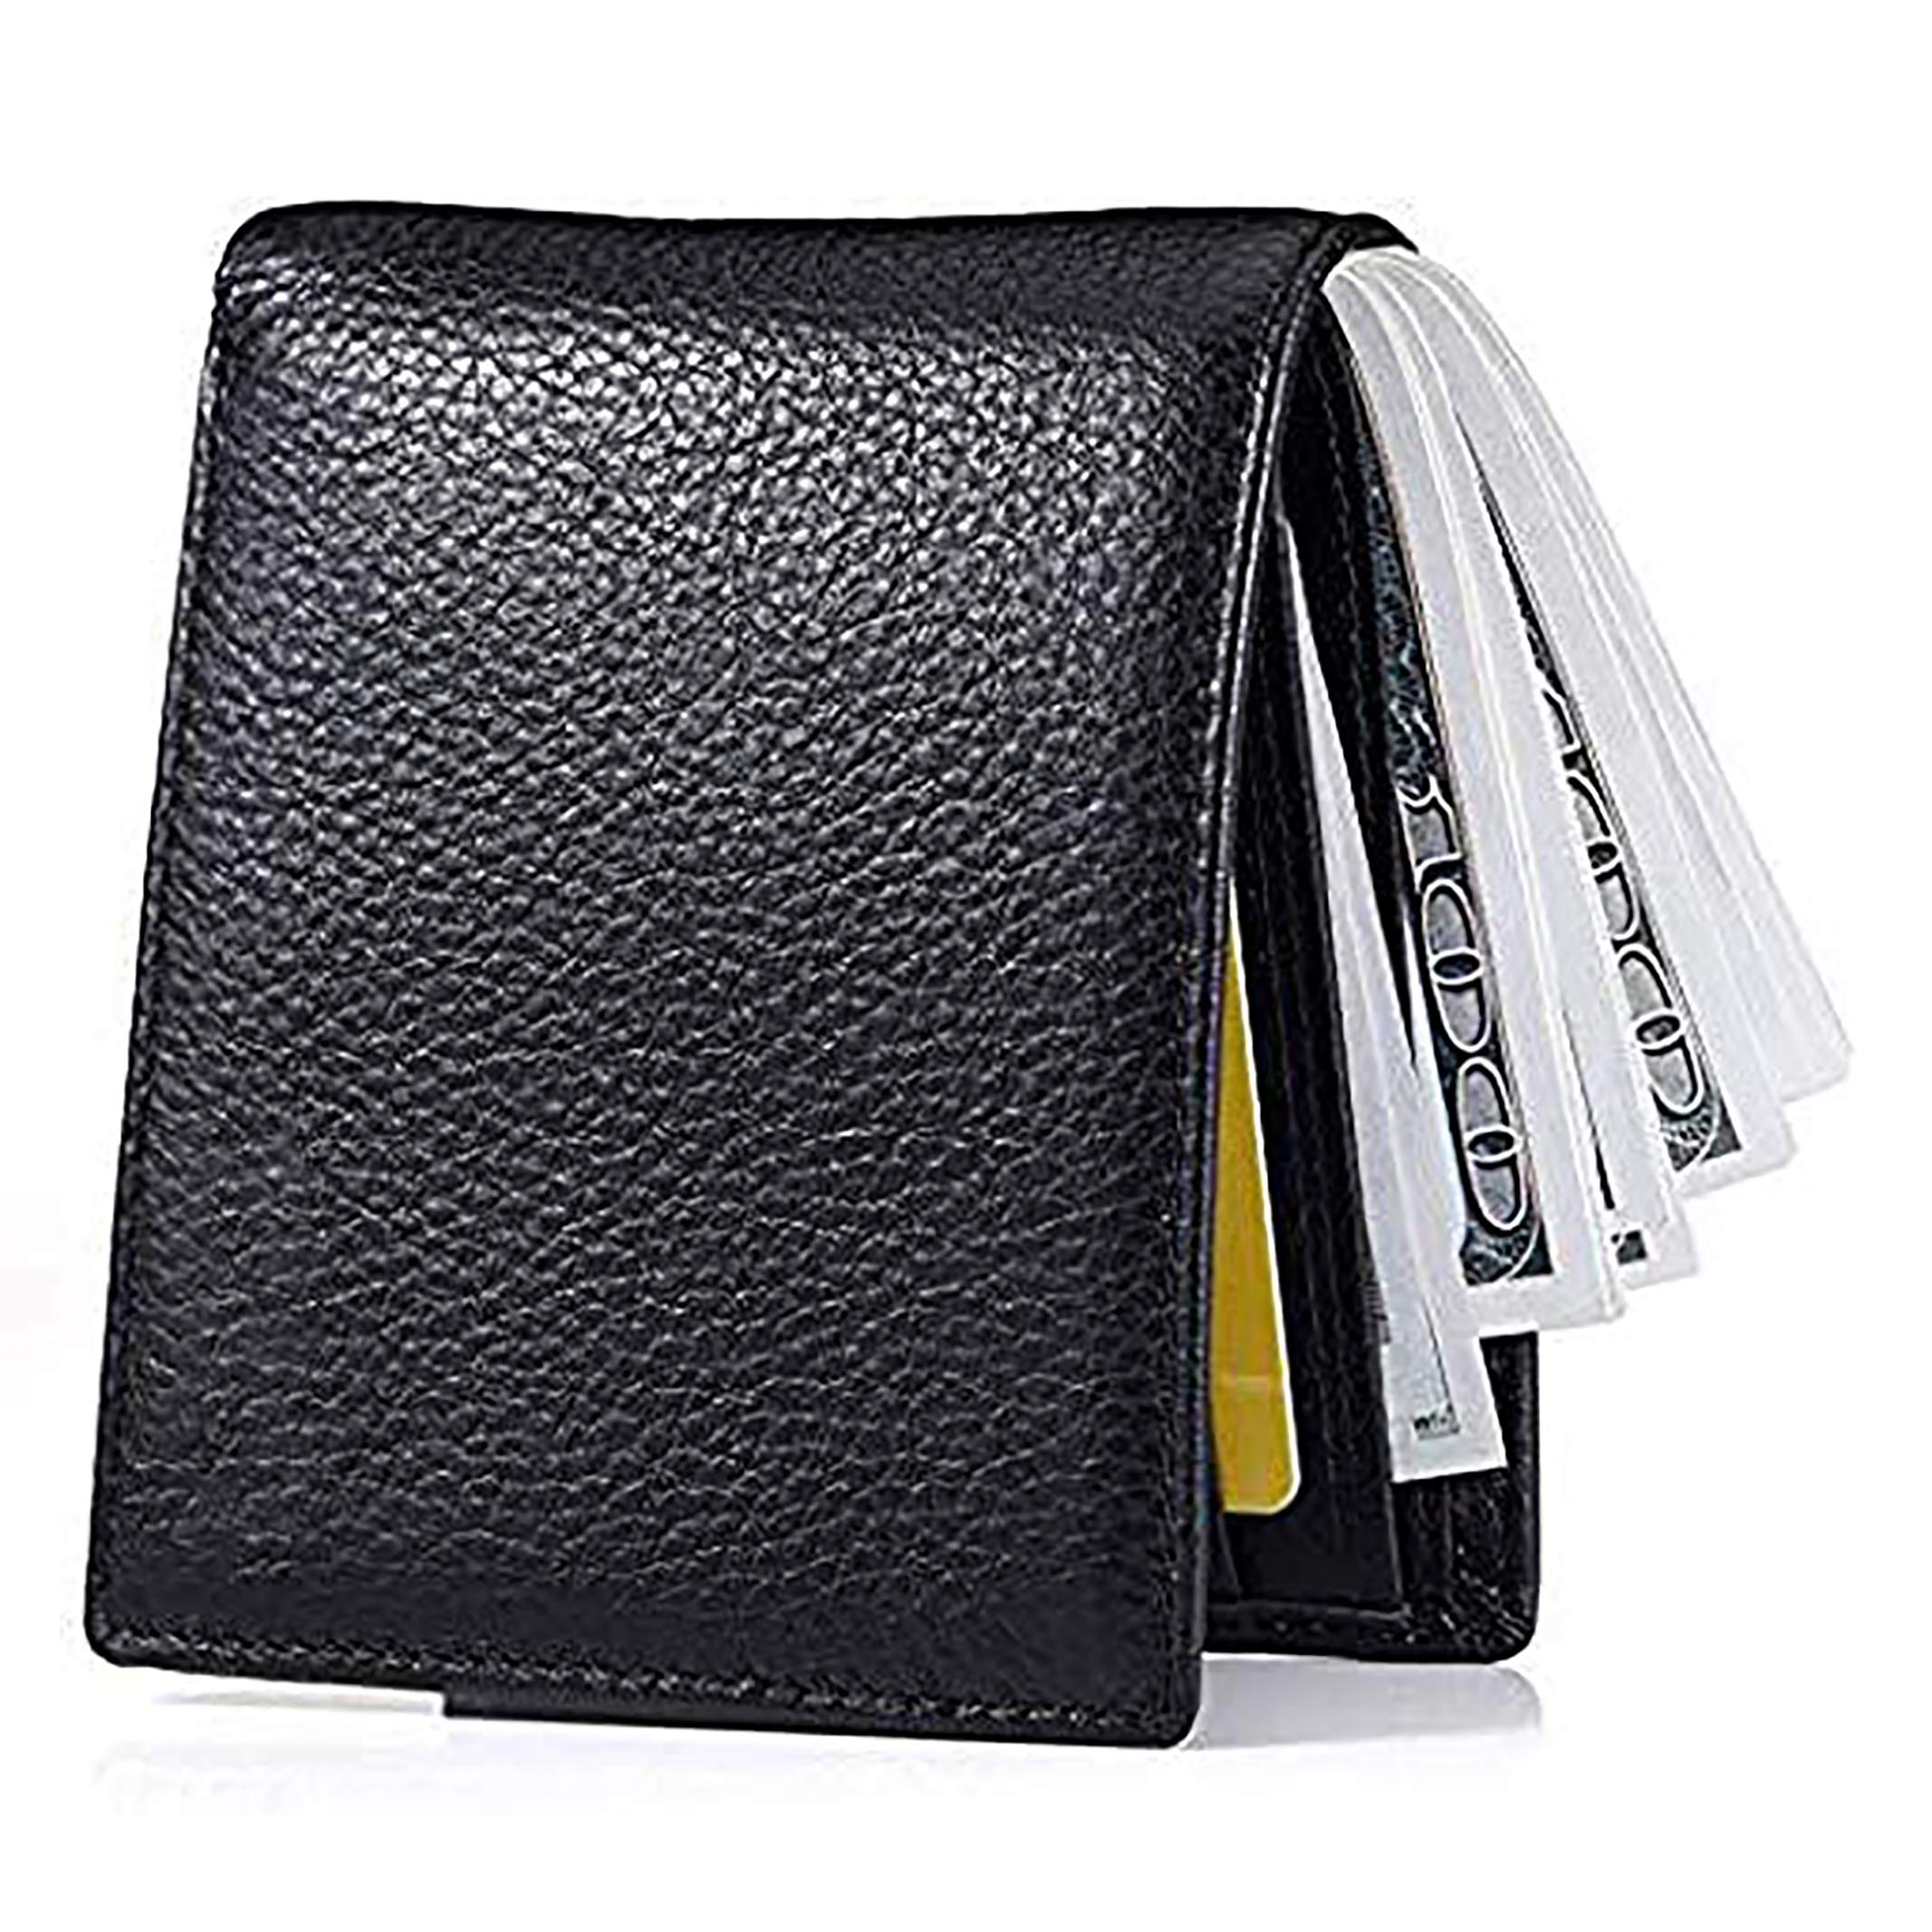 Men's Wallet, Ultra Slim Bifold Leather Wallet with Money Clip Protection Currency Pockets for ID Card, Credit Card, Business Cards, Cash With Gift Box